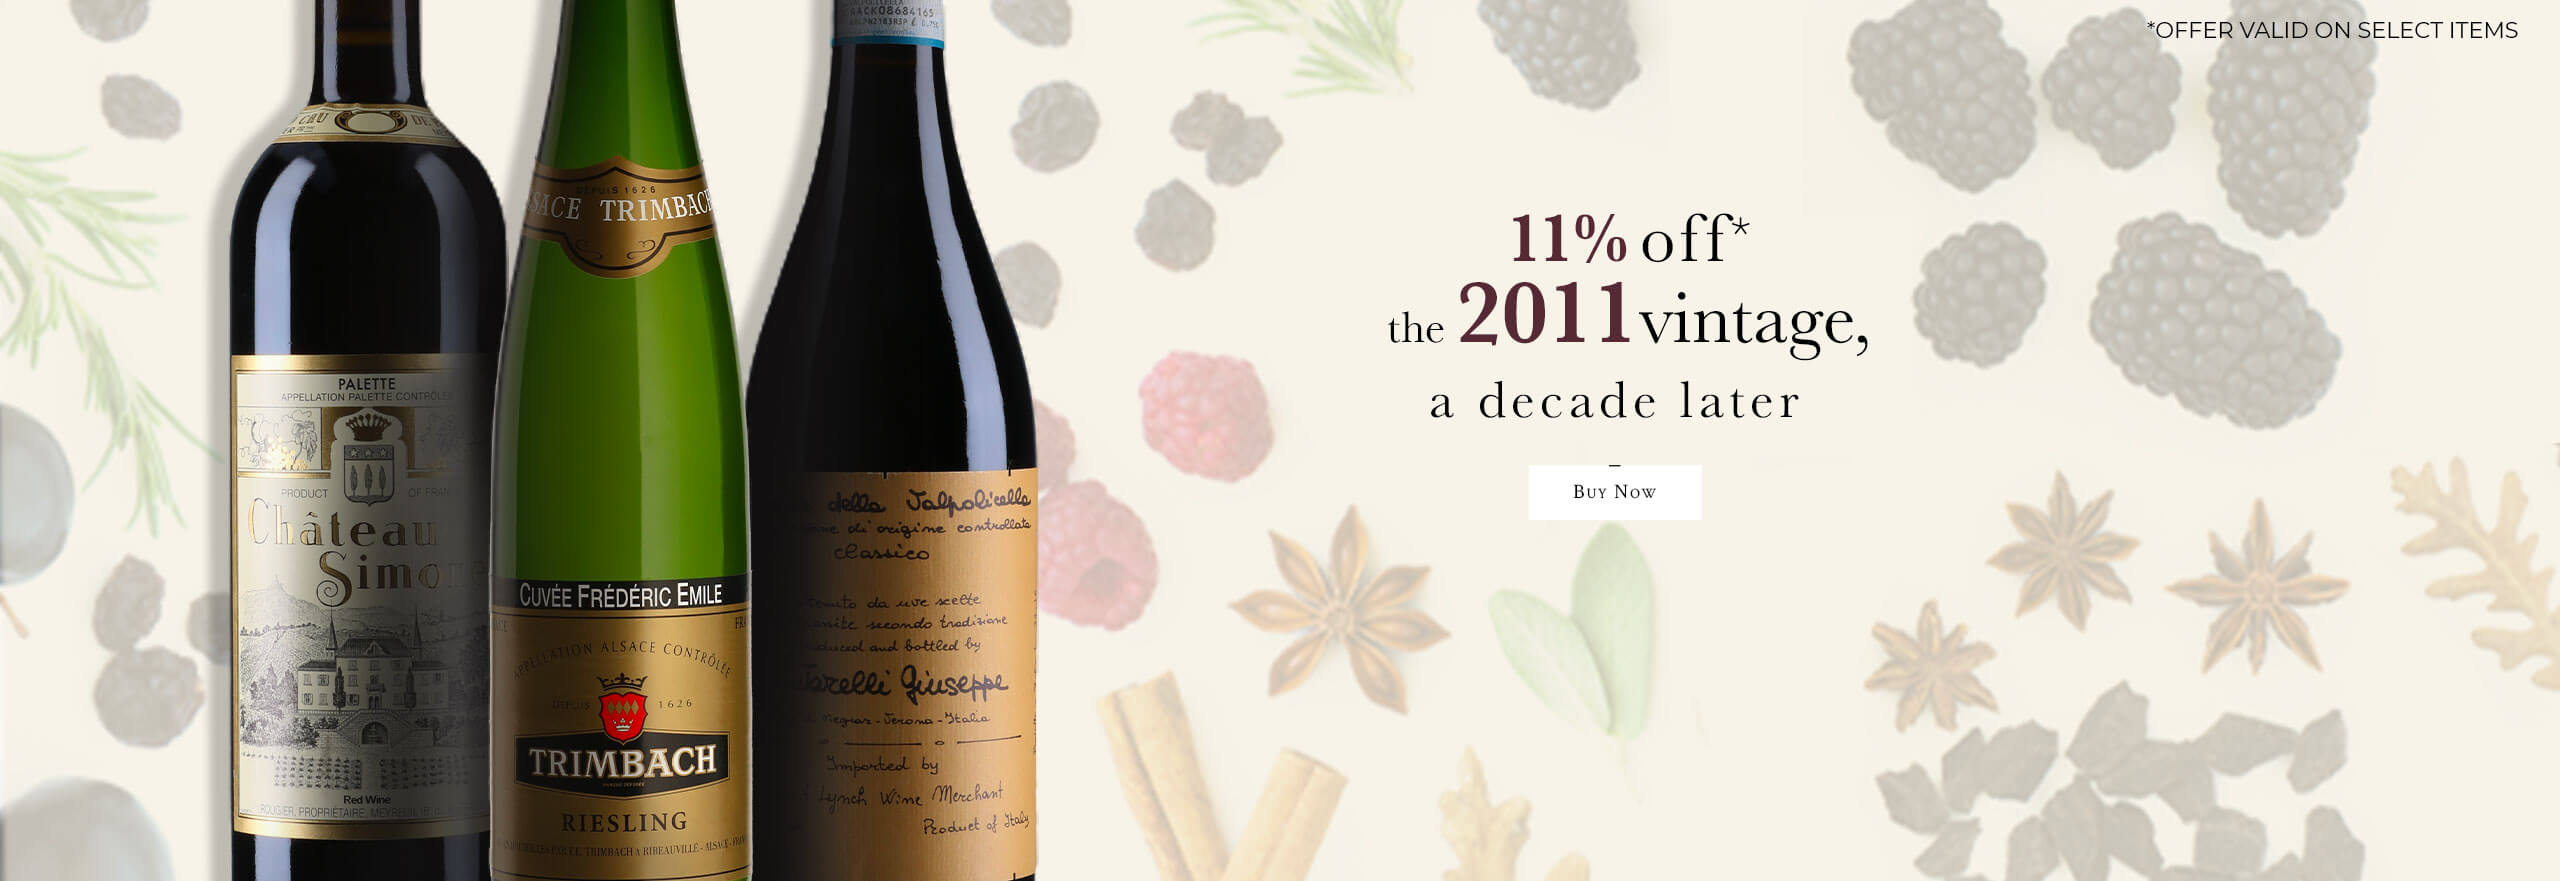 11% off the 2011 vintage